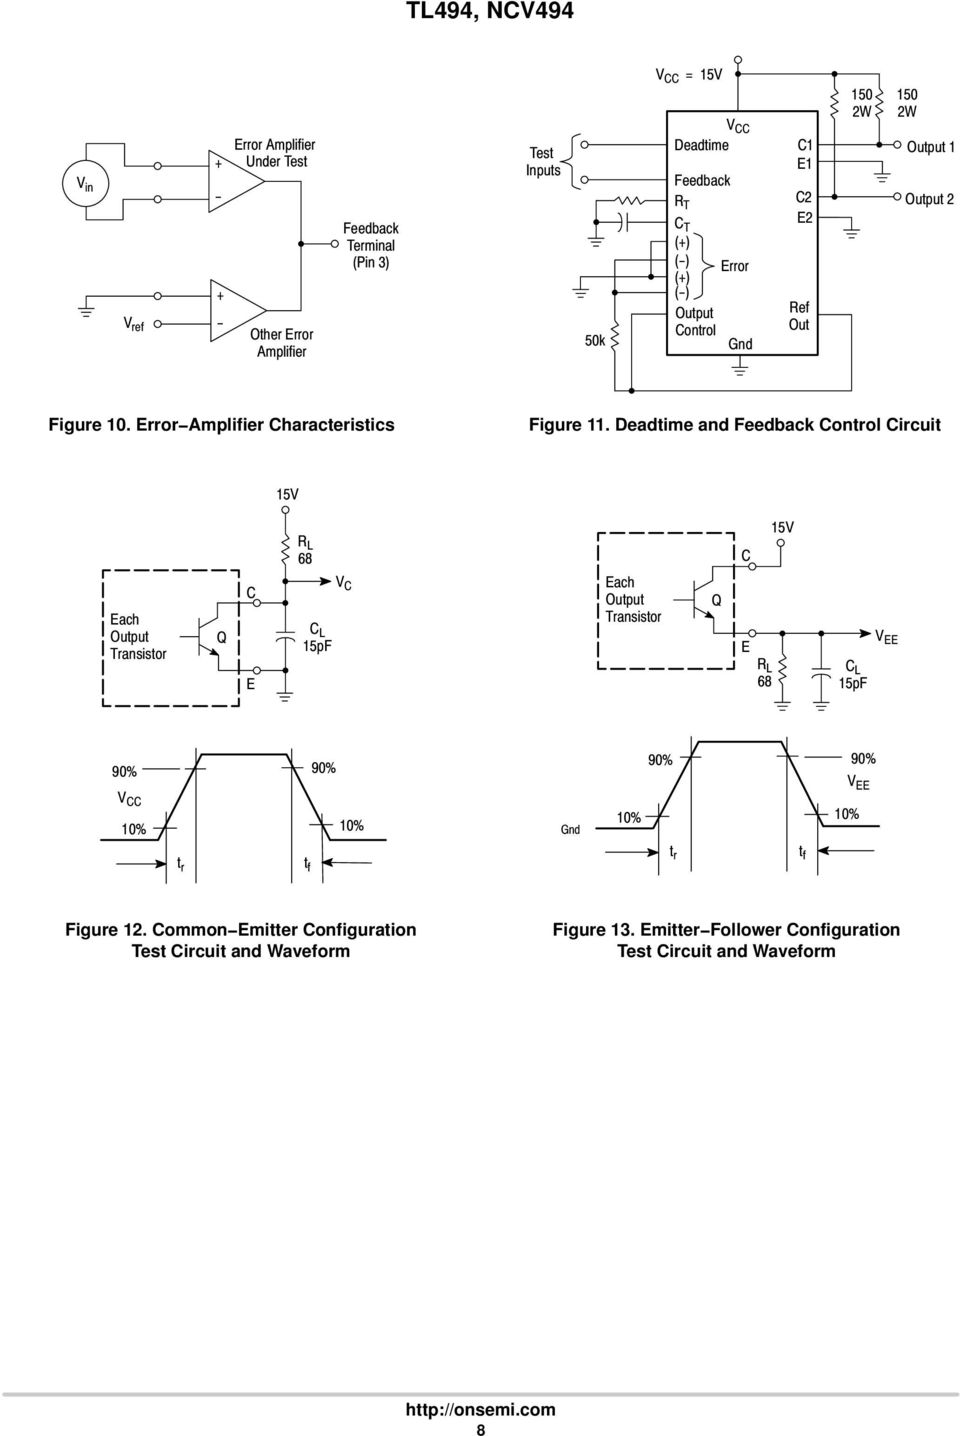 Tl494 Ncv494 Switchmode Pulse Width Modulation Control Circuit Pdf The Time Delay With A Fet Controlcircuit Diagram Deadtime And Feedback 5v Each Transistor C E R L 68 5pf V